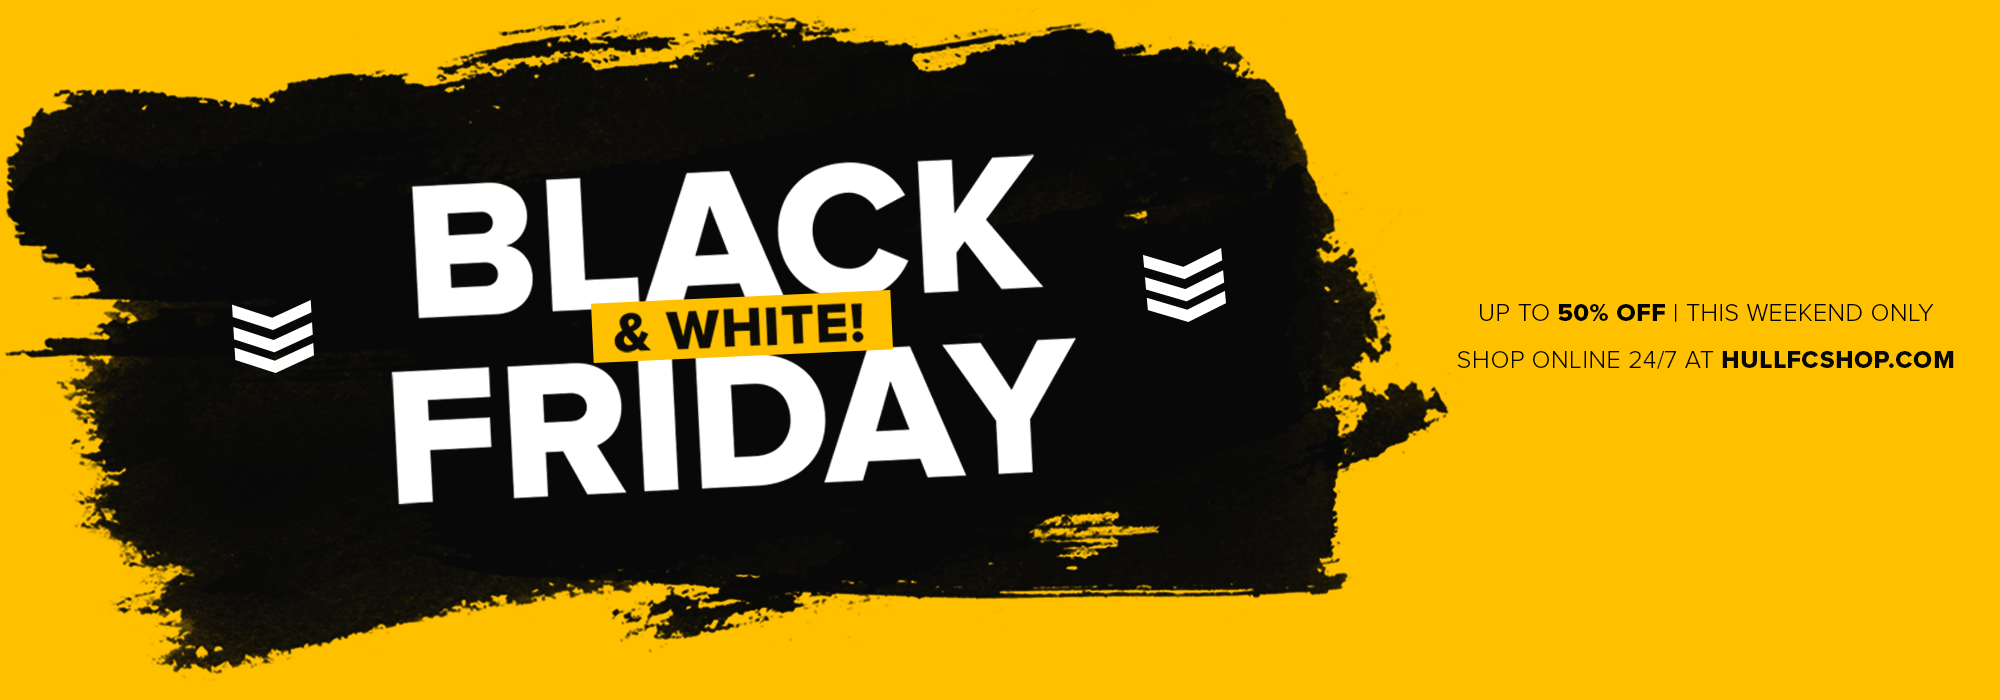 bc1a7c264 Huge Offers This Black   White Friday!